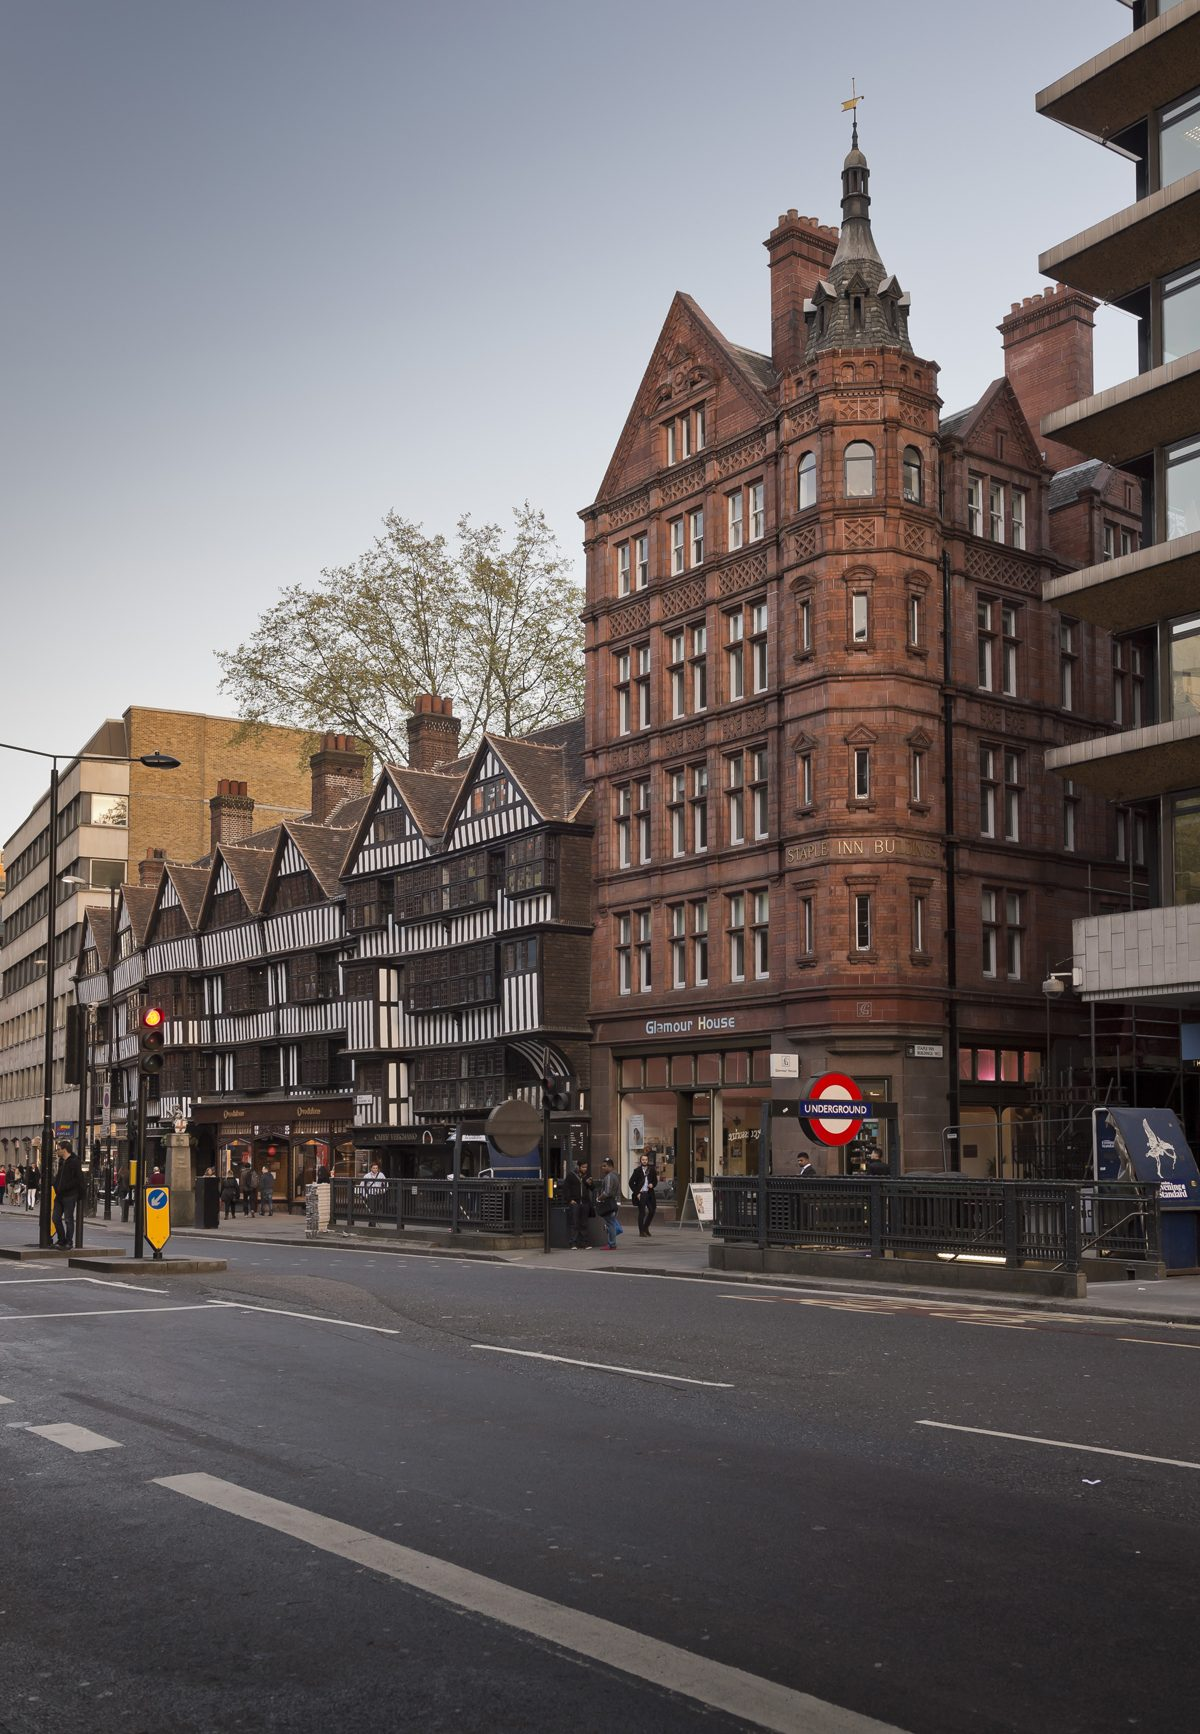 Staple Inn - Holborn, London - Exterior